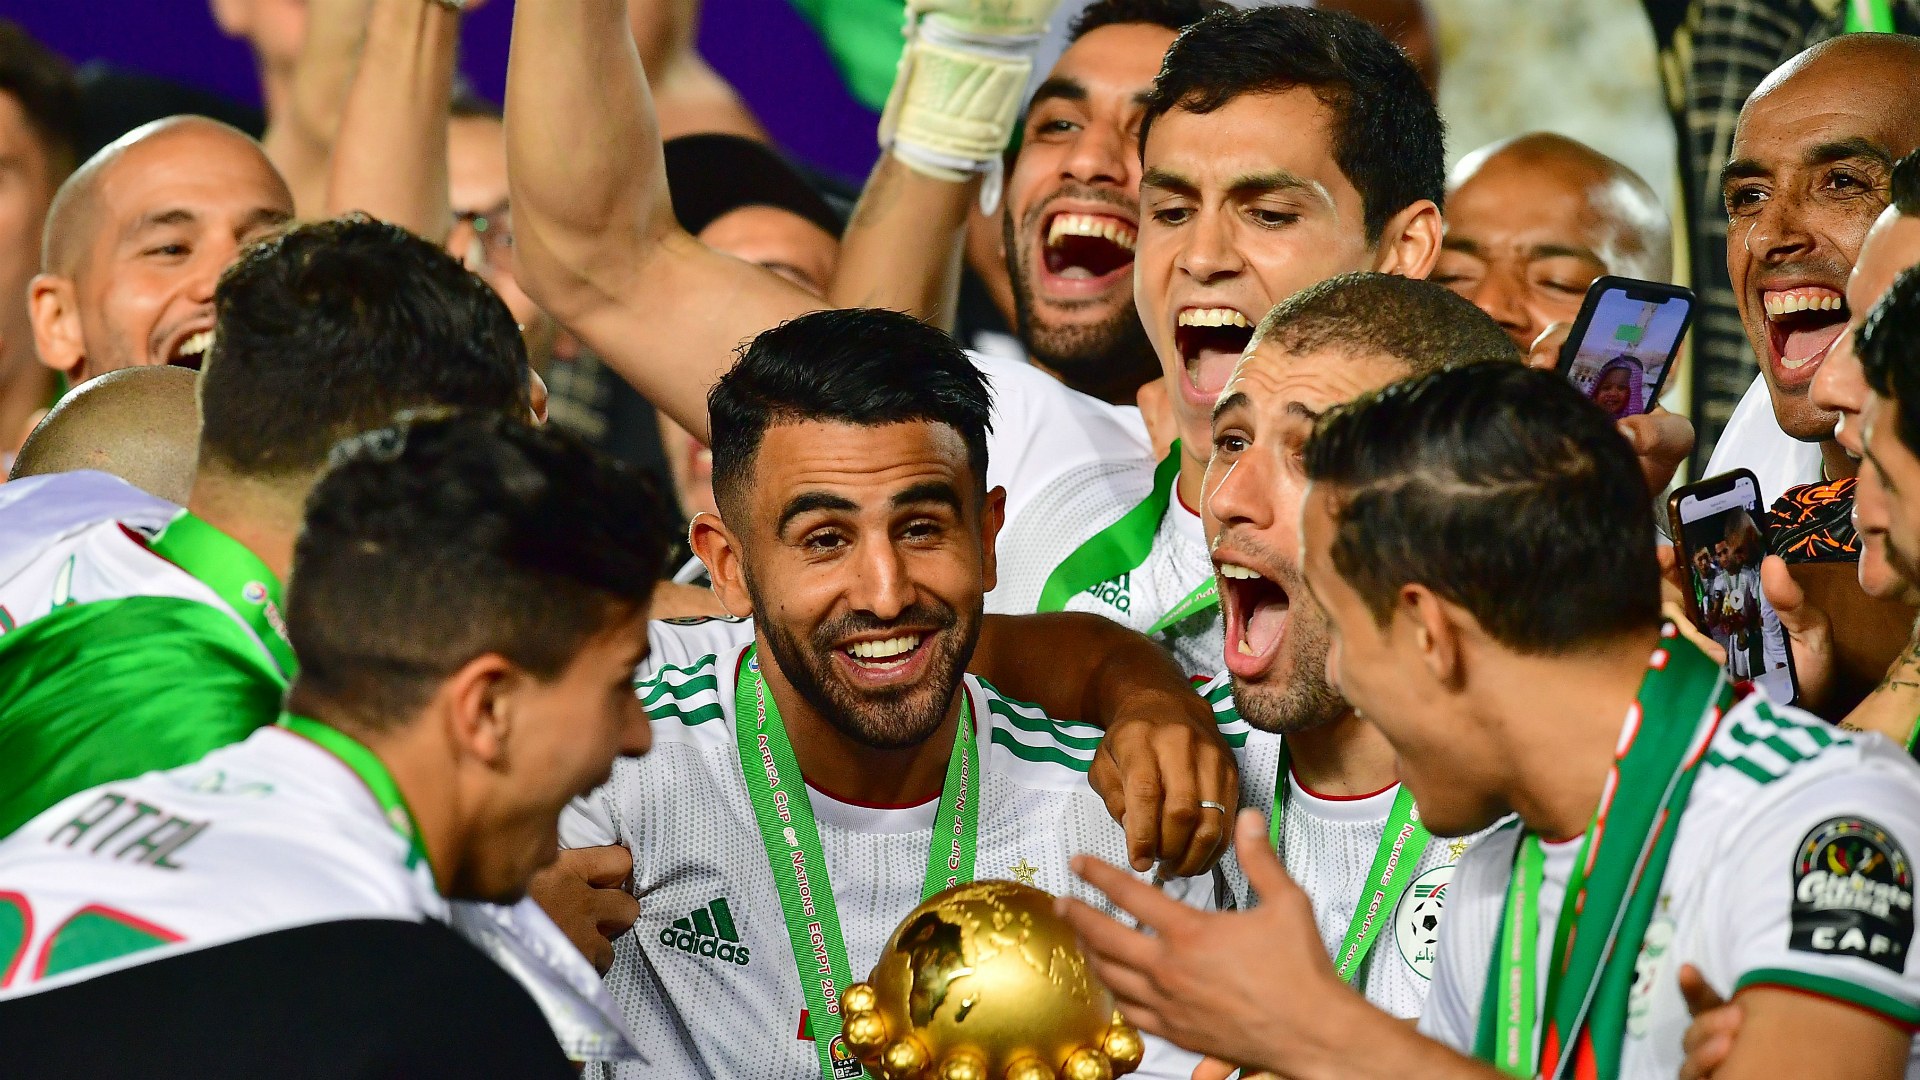 'It is going to kill our players' - Guardiola concerned with 'crazy' scheduling